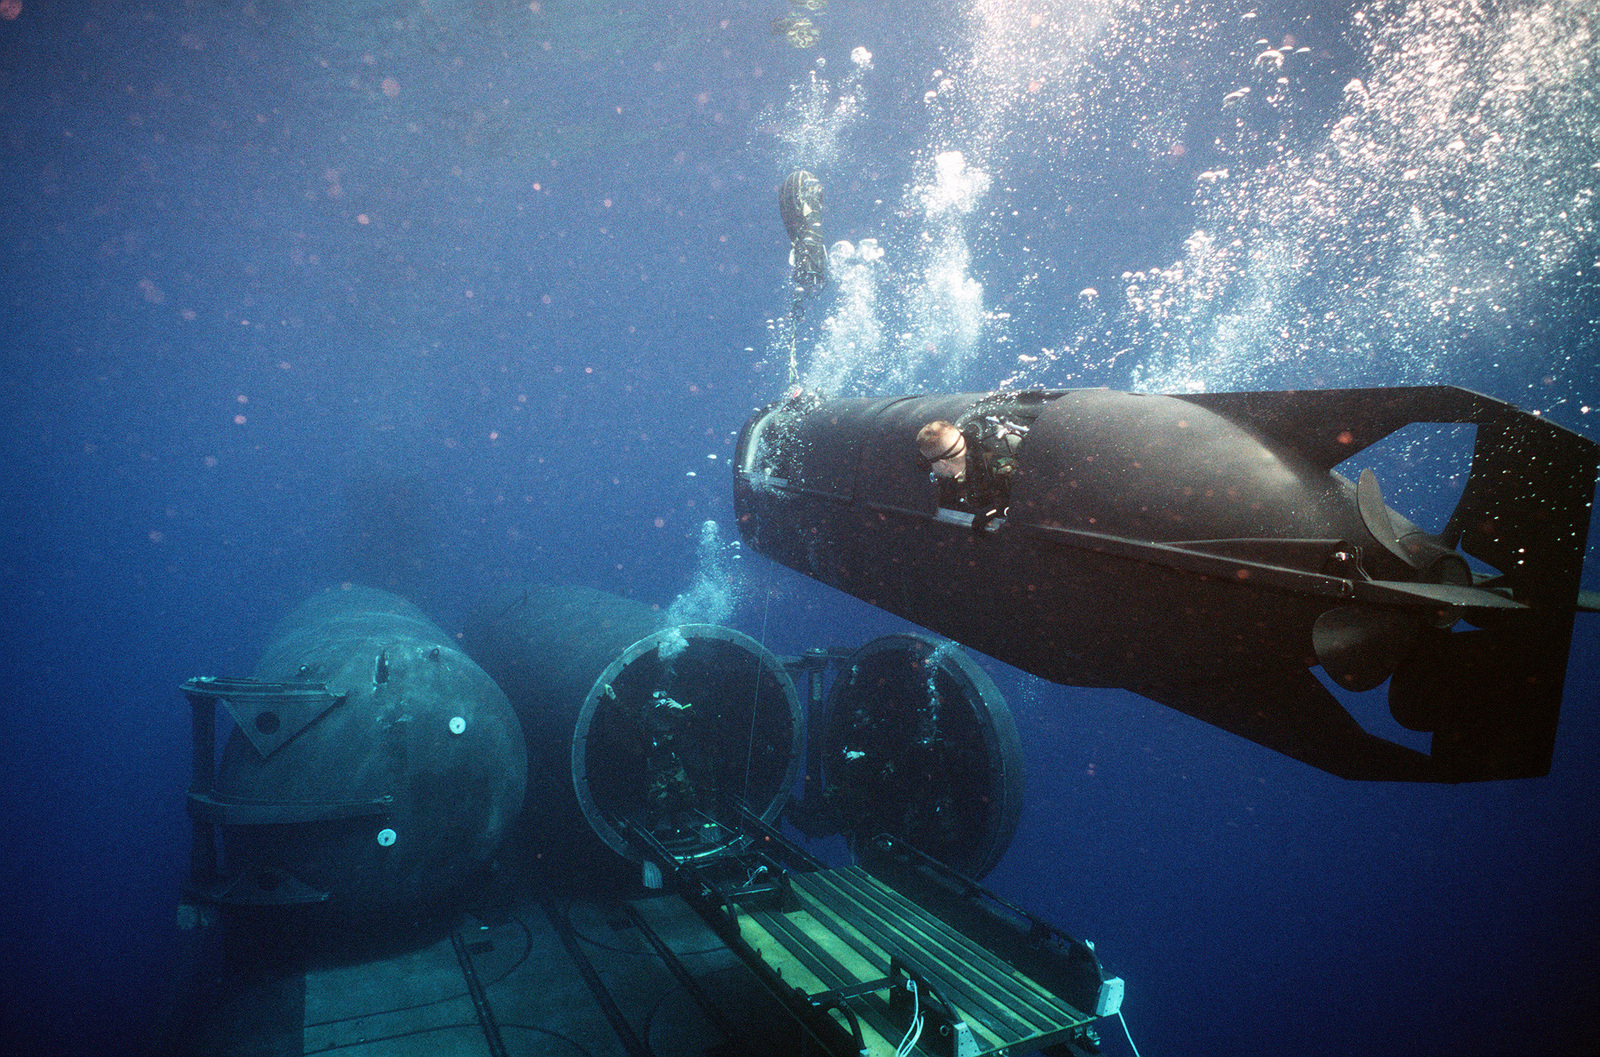 Drydock shelter (DDS) deck captain signals to the operator of a Mark 8 special dive vehicle (